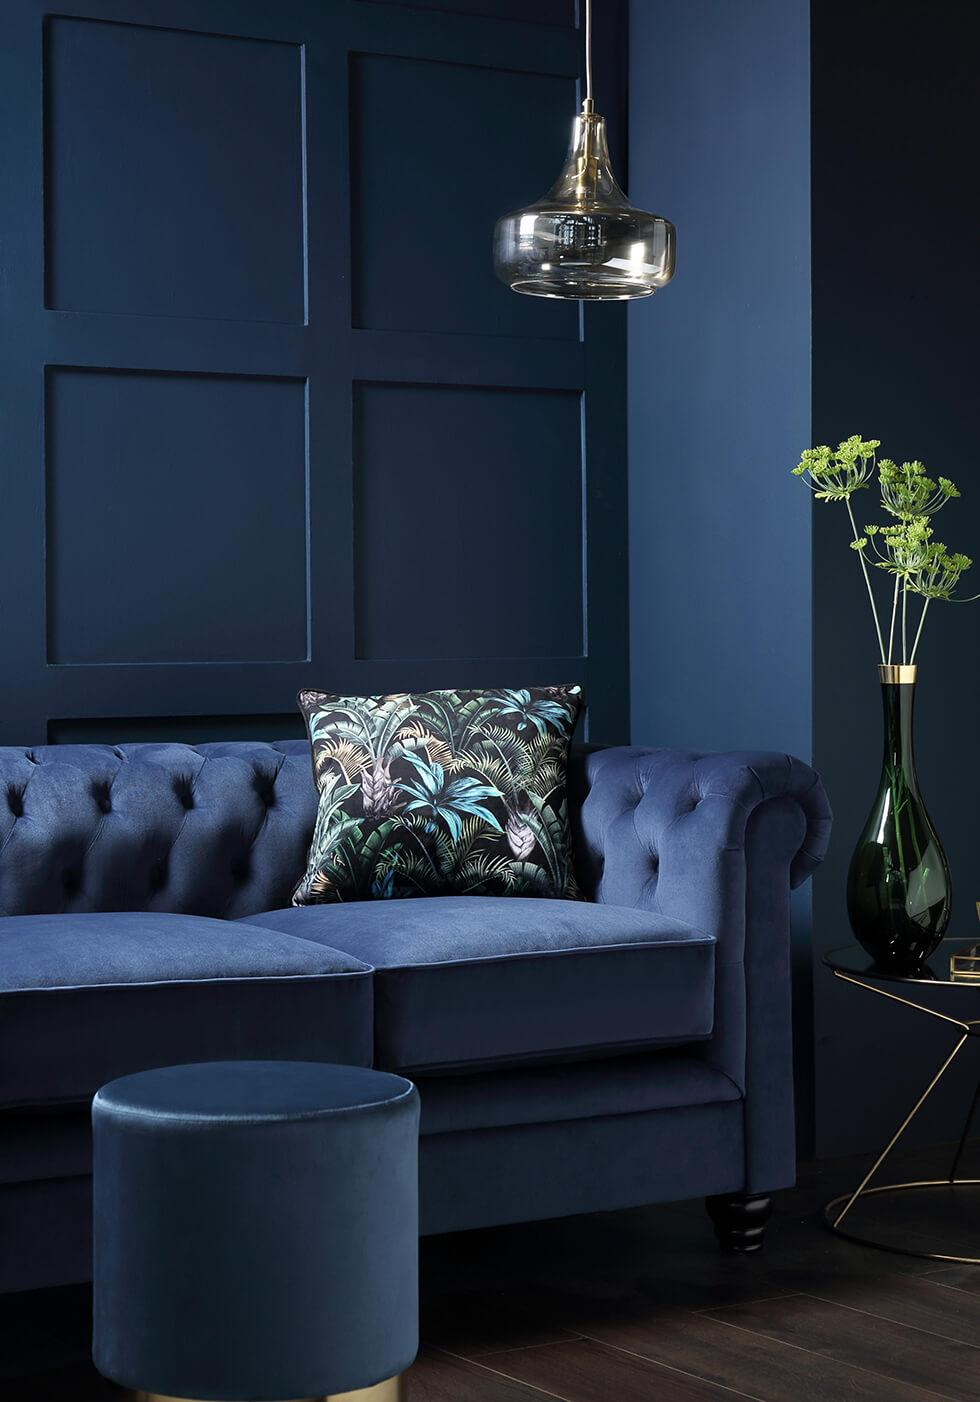 Blue room with blue velvet Chesterfield sofa and leather footstool